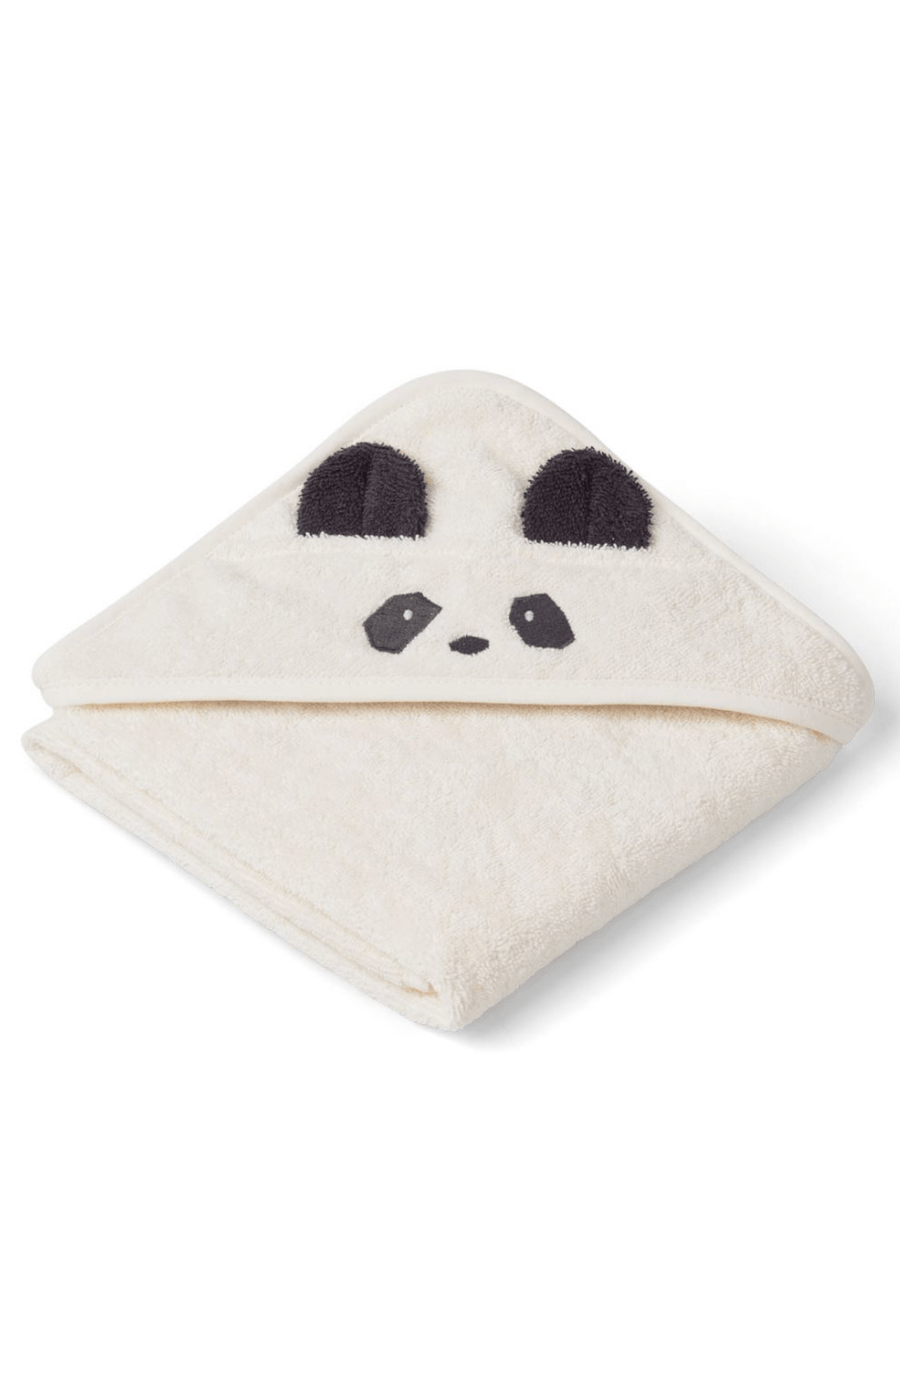 Liewood Hooded Towel - Panda